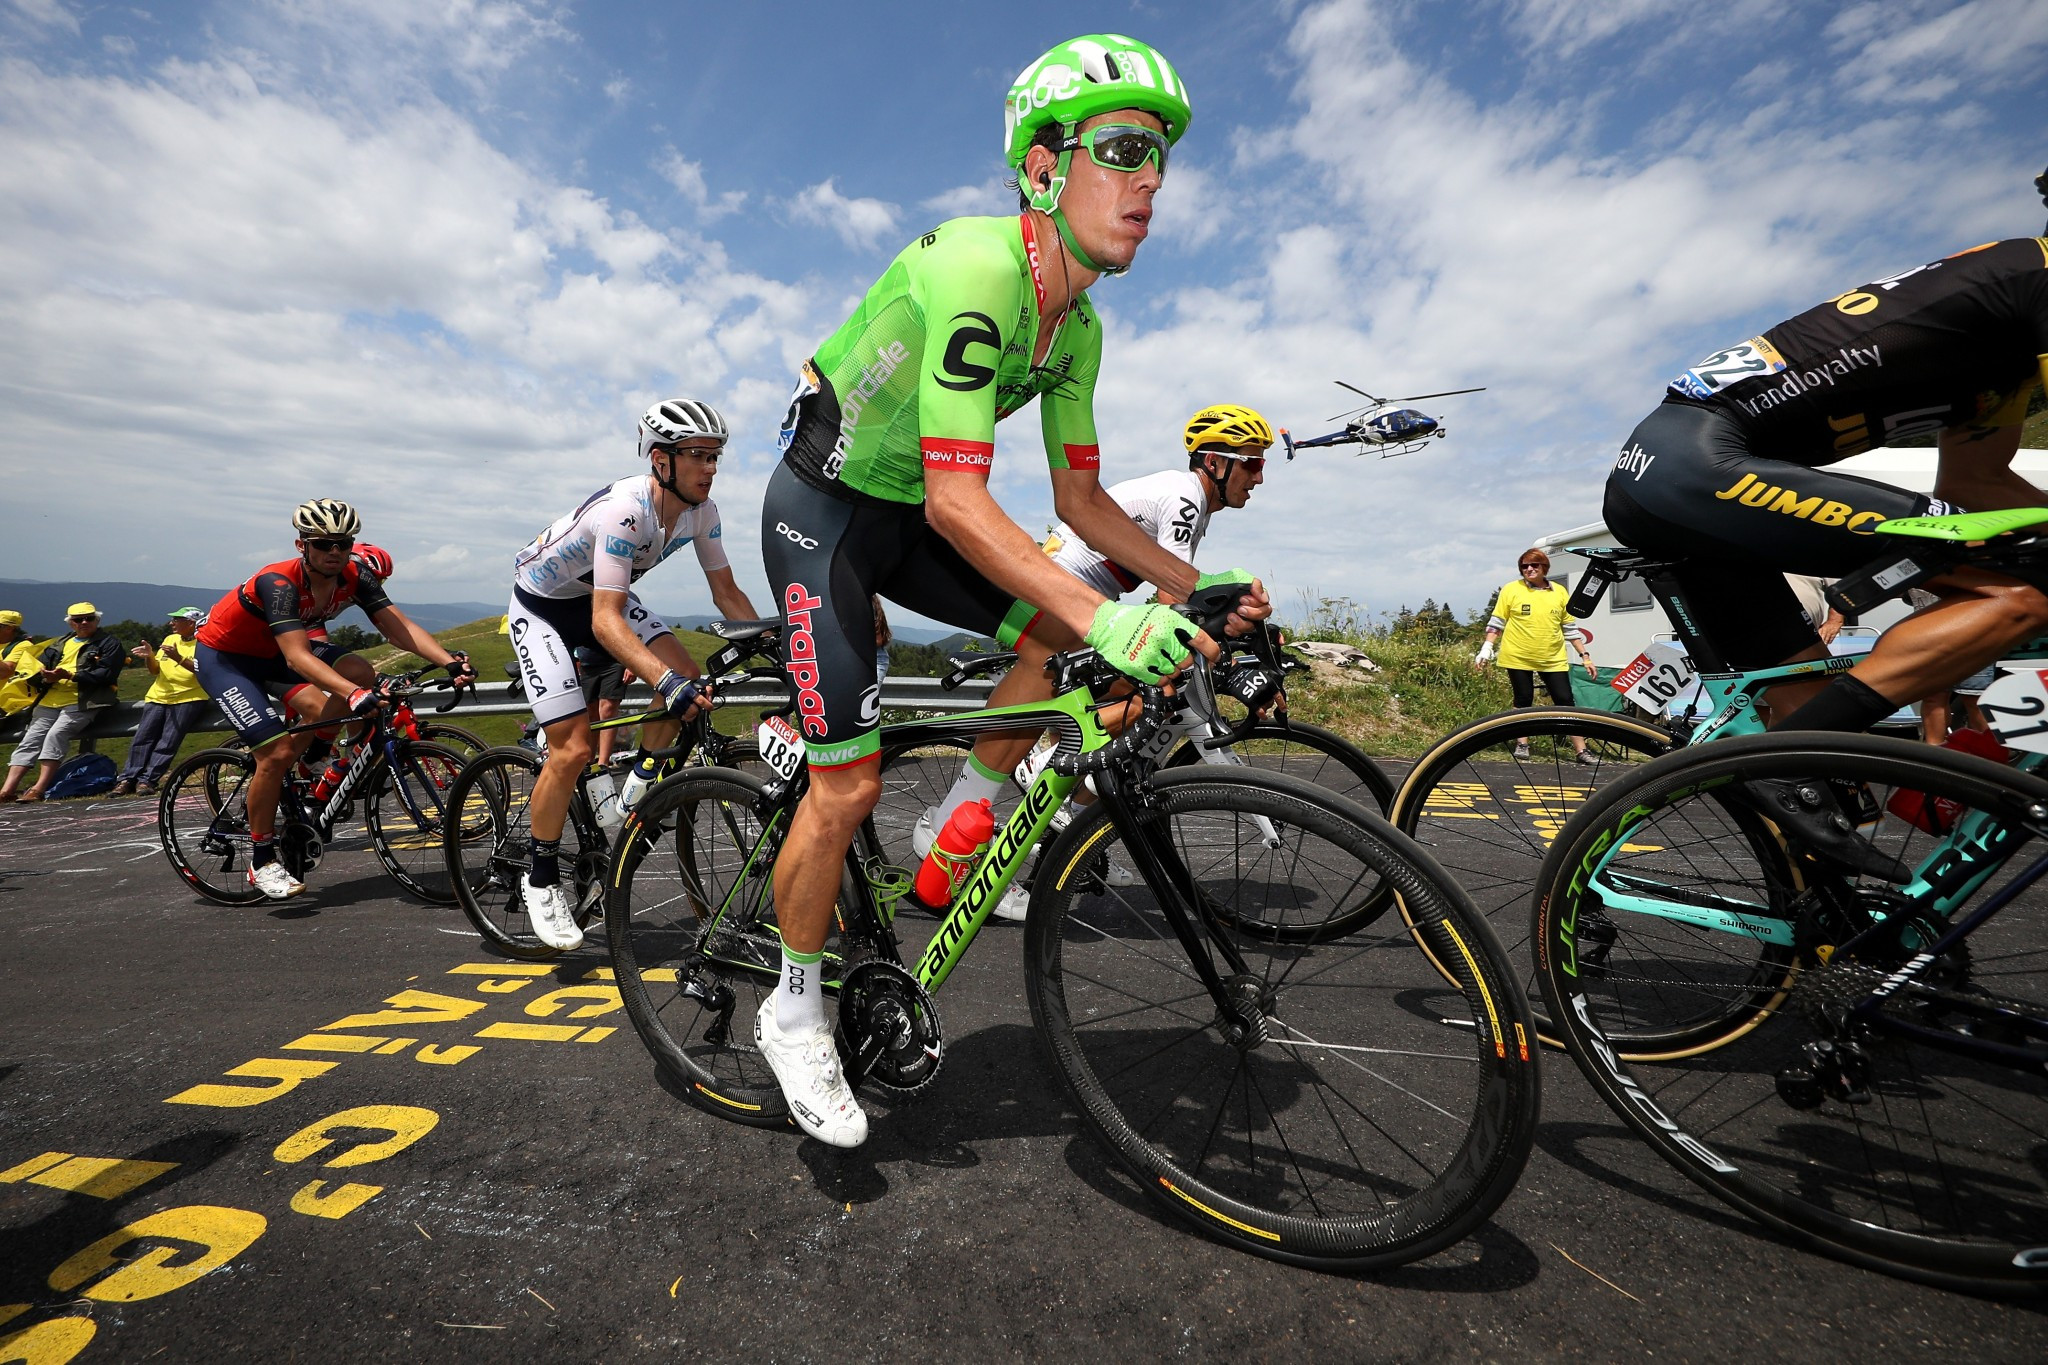 Cannondale-Drapac have turned to crowdfunding to ensure they will compete in the 2018 WorldTour season ©Getty Images